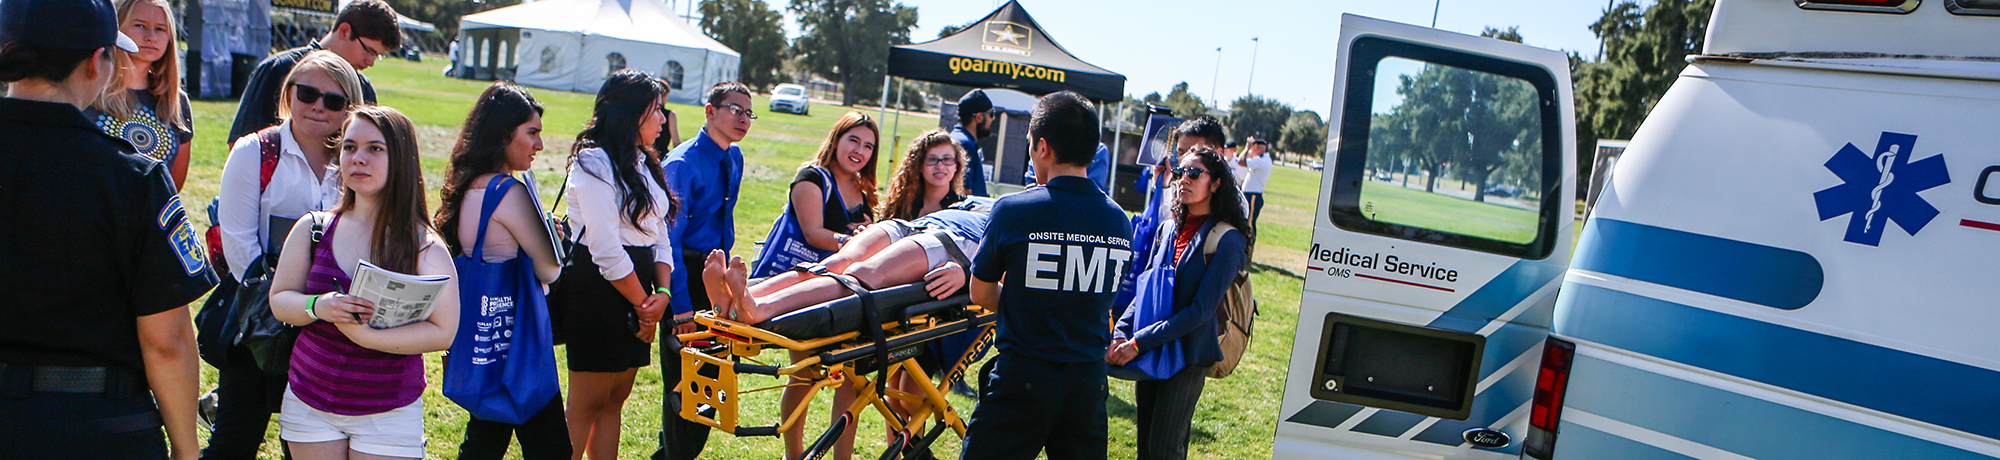 Pre-Health Conference EMT Demonstration